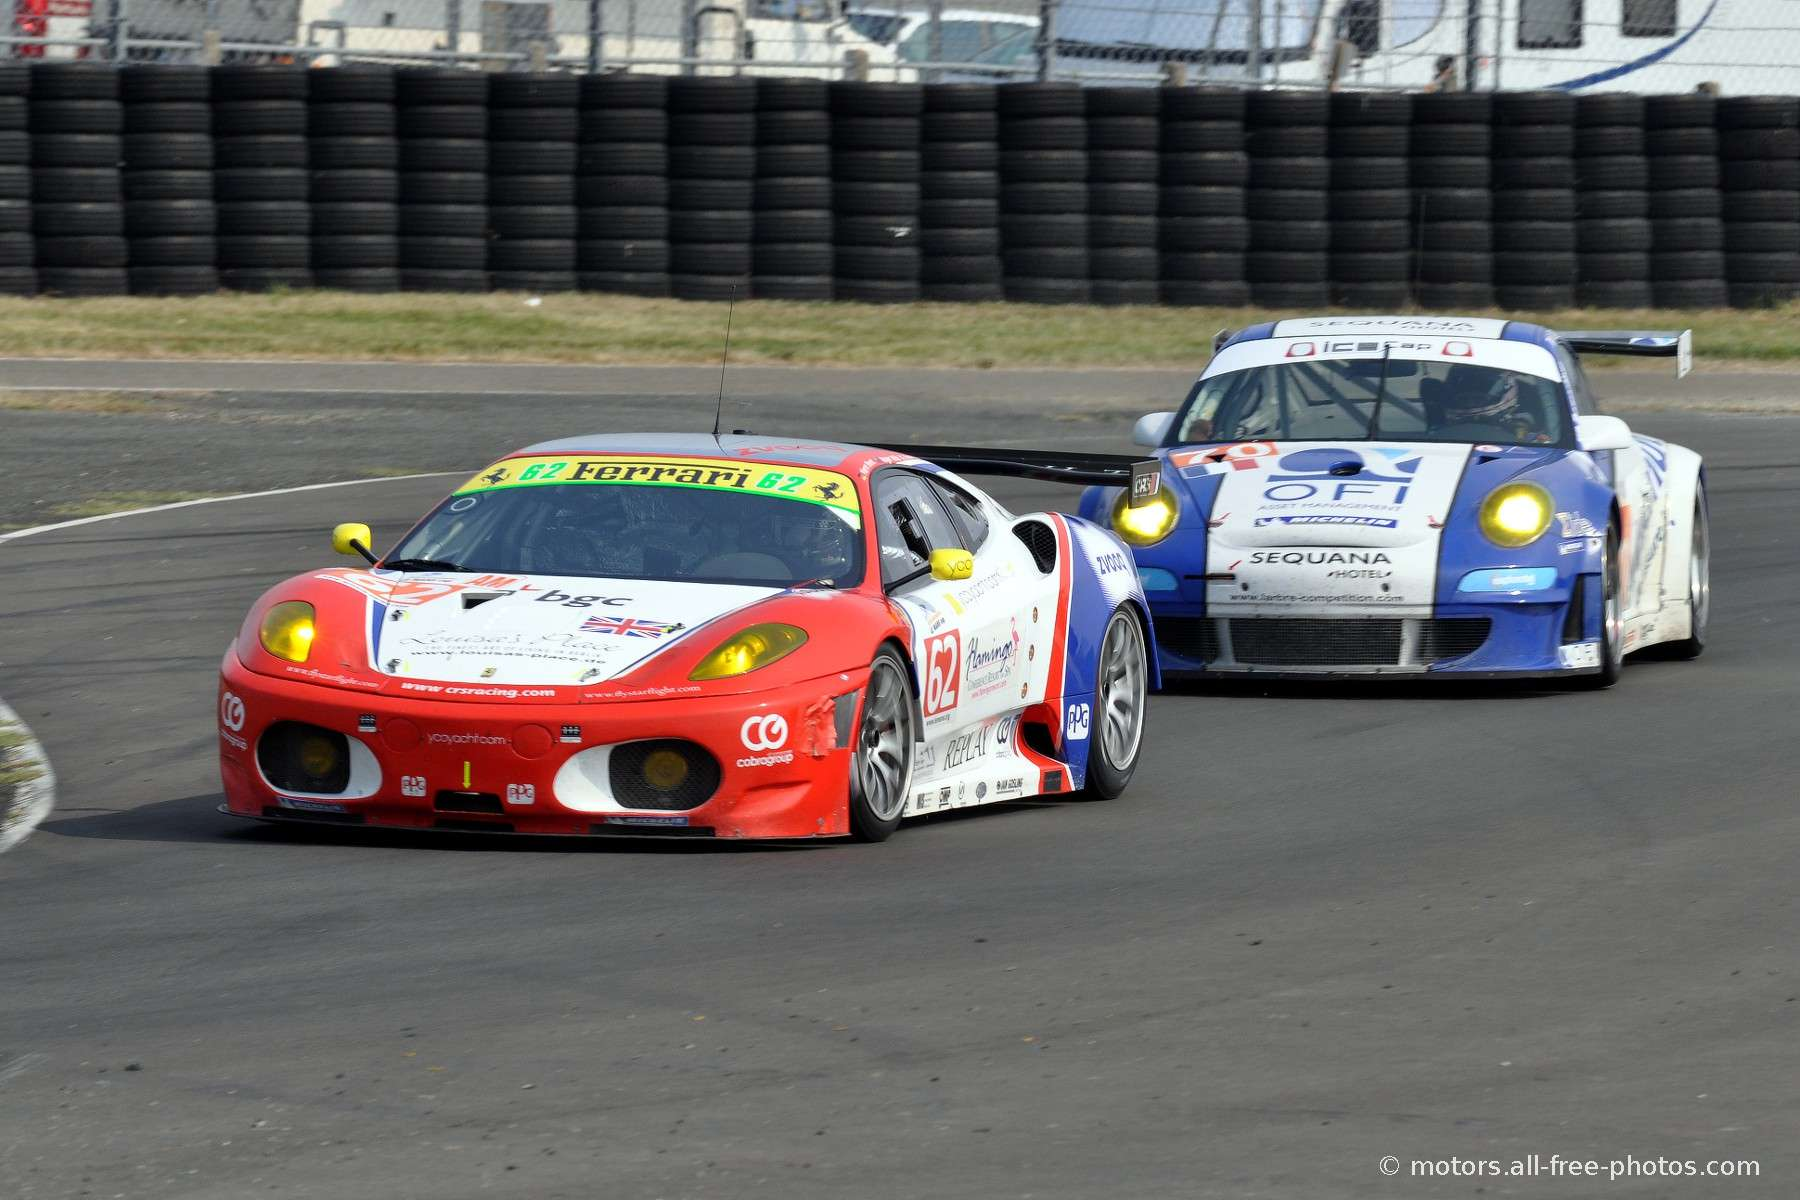 Ferrari F430 - Team CRS Racing